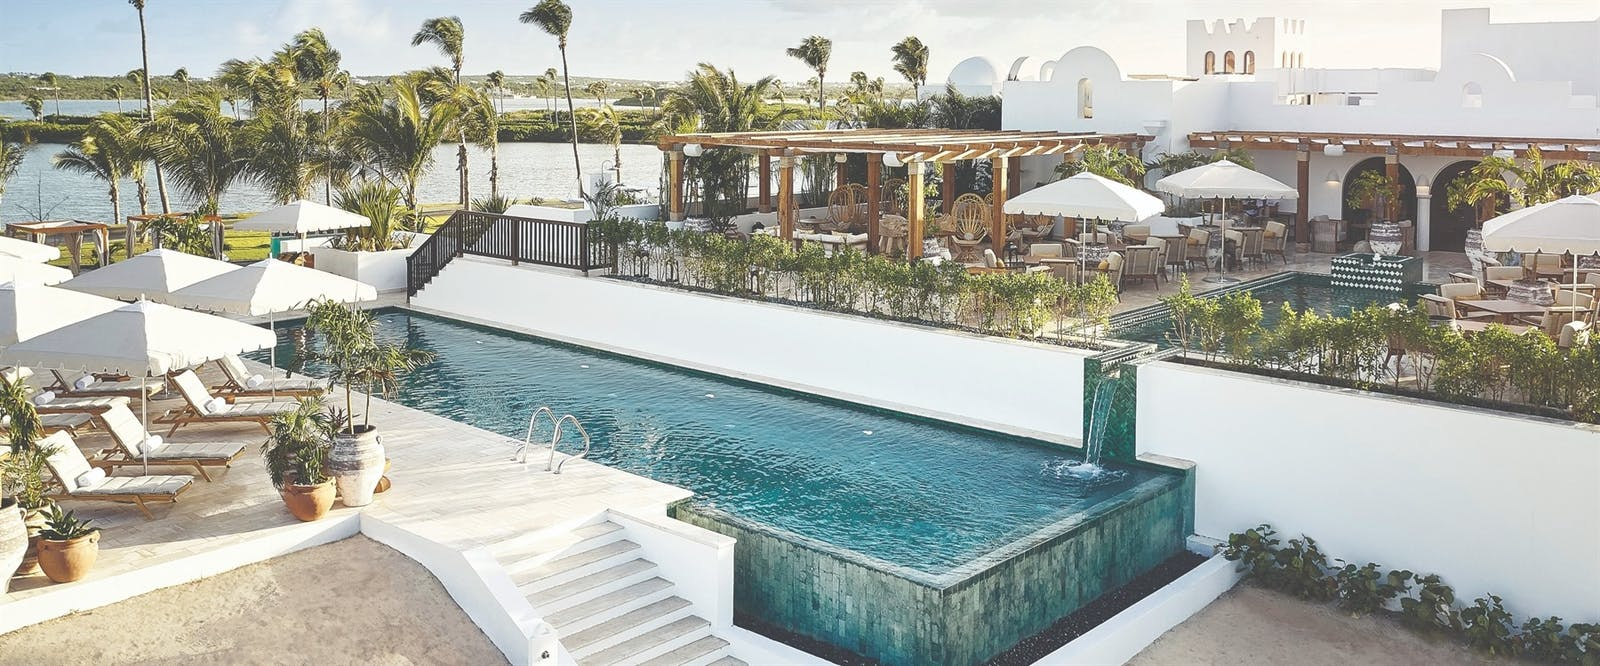 Swimming Pool at Cap Juluca, A Belmond Hotel, Anguilla